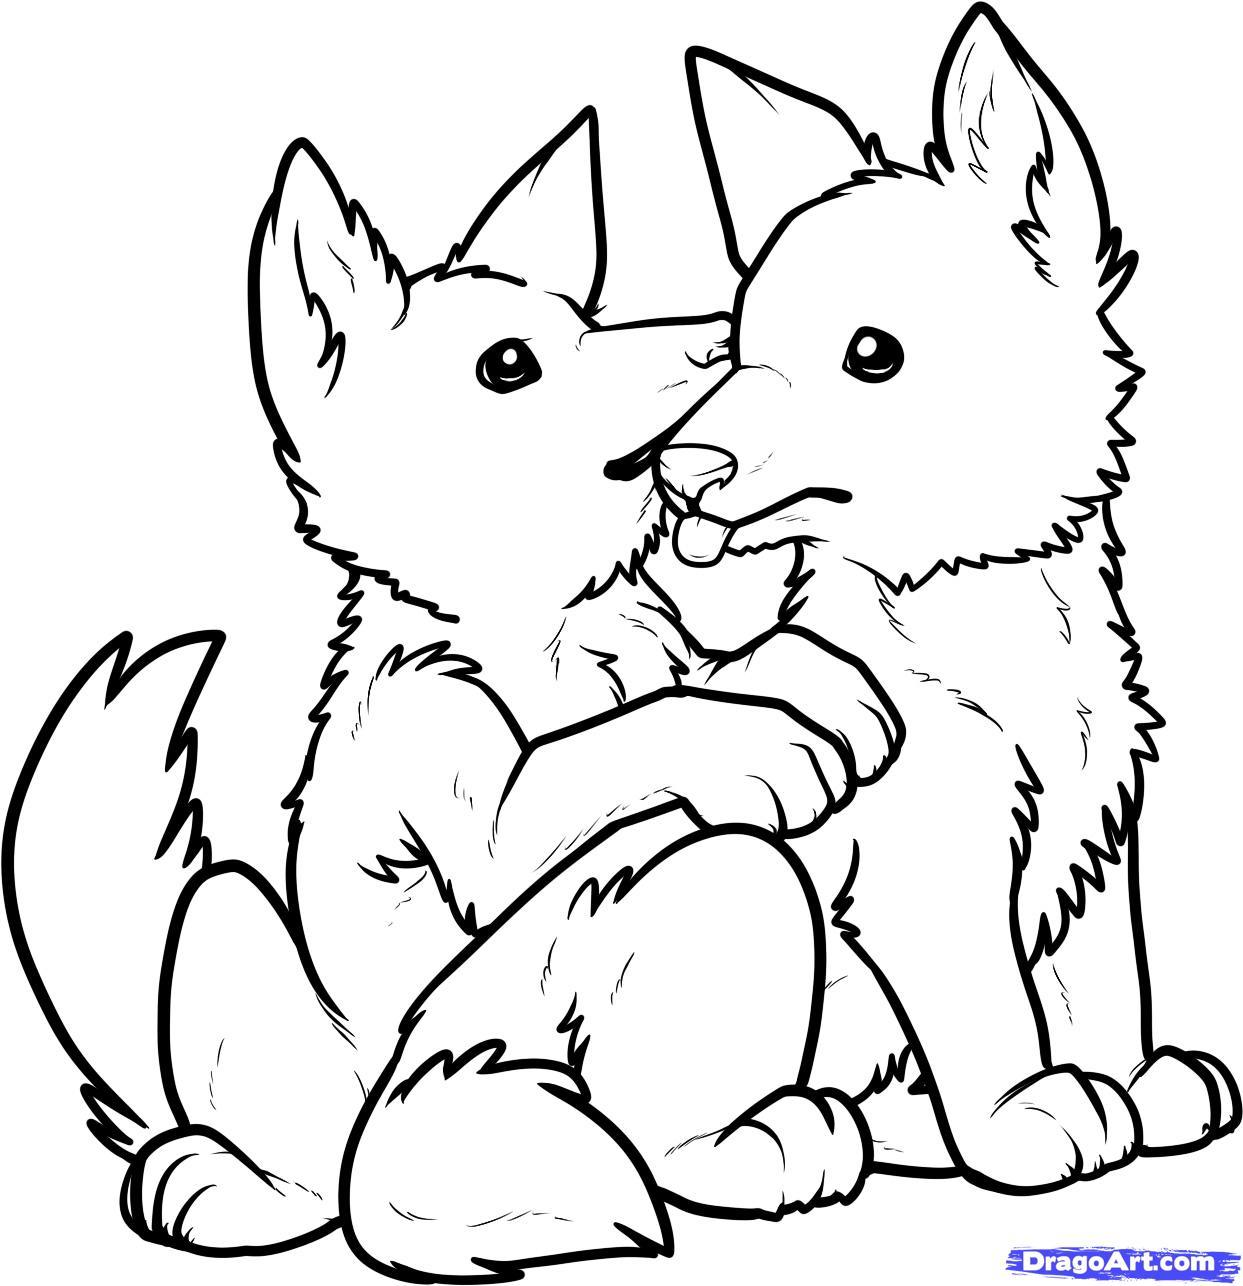 1243x1286 Step 12 How To Draw Wolf Pups Puppies A Puppy